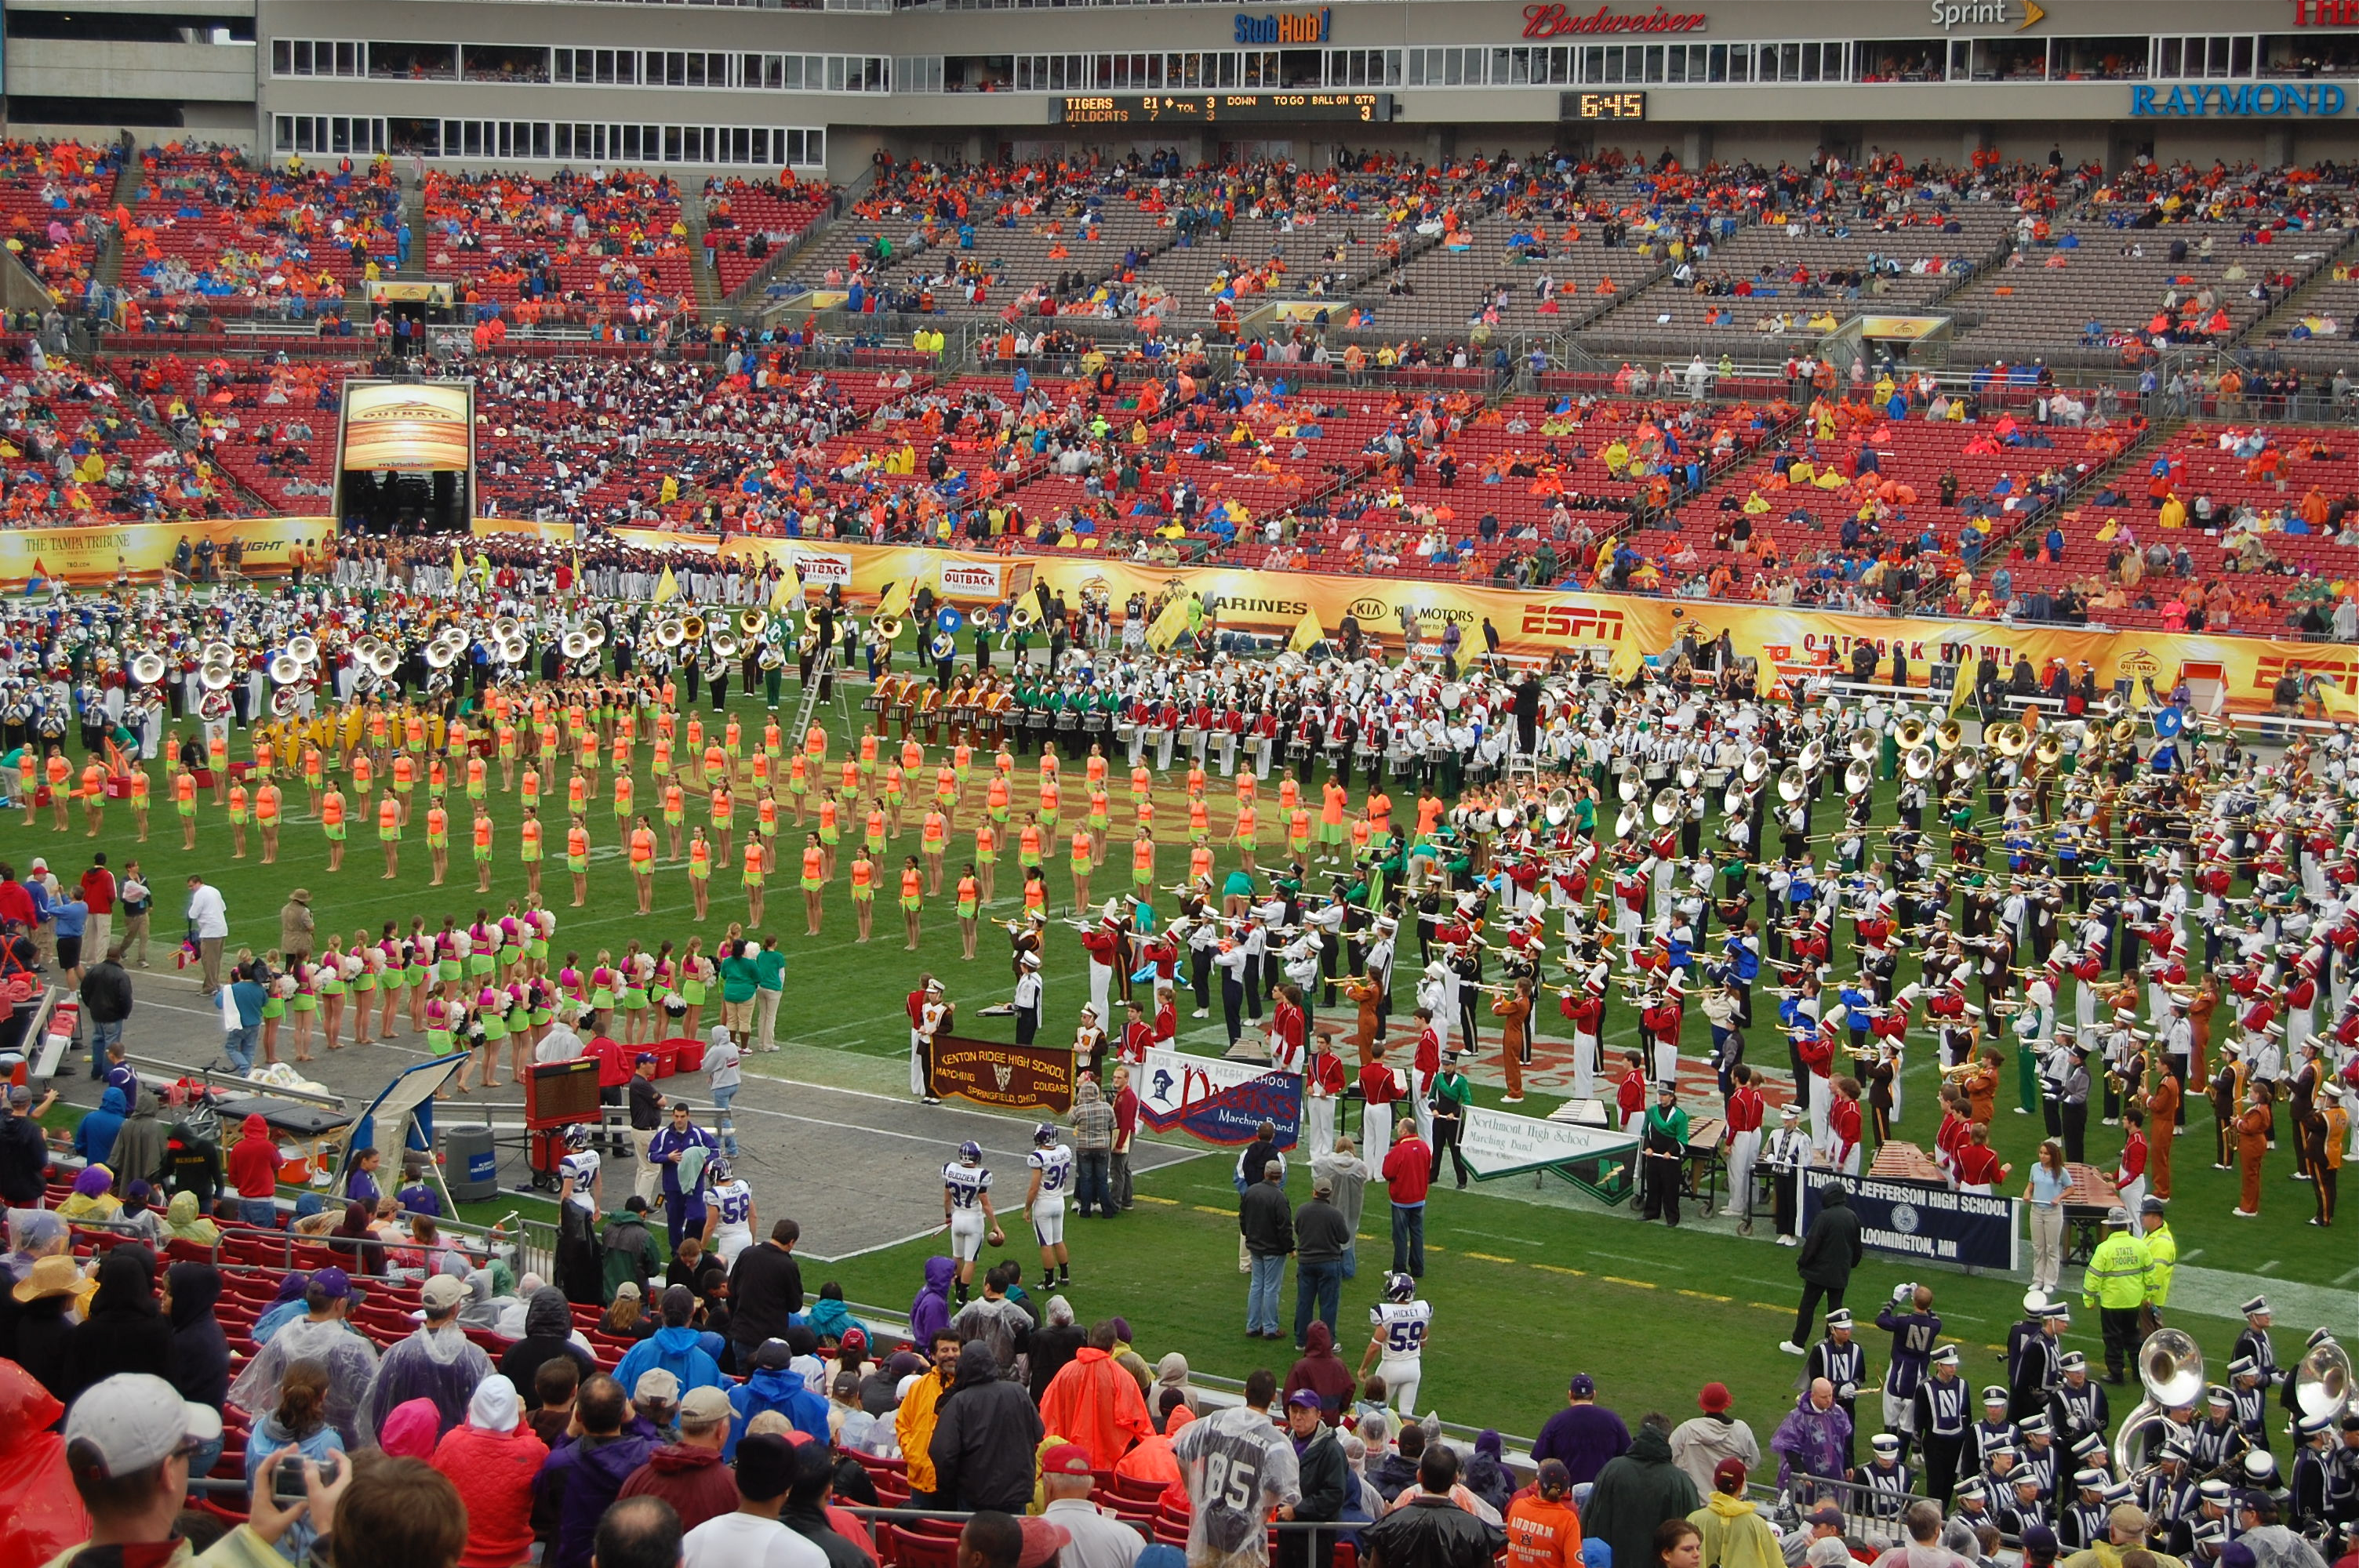 Away Band Sections 143 & 140